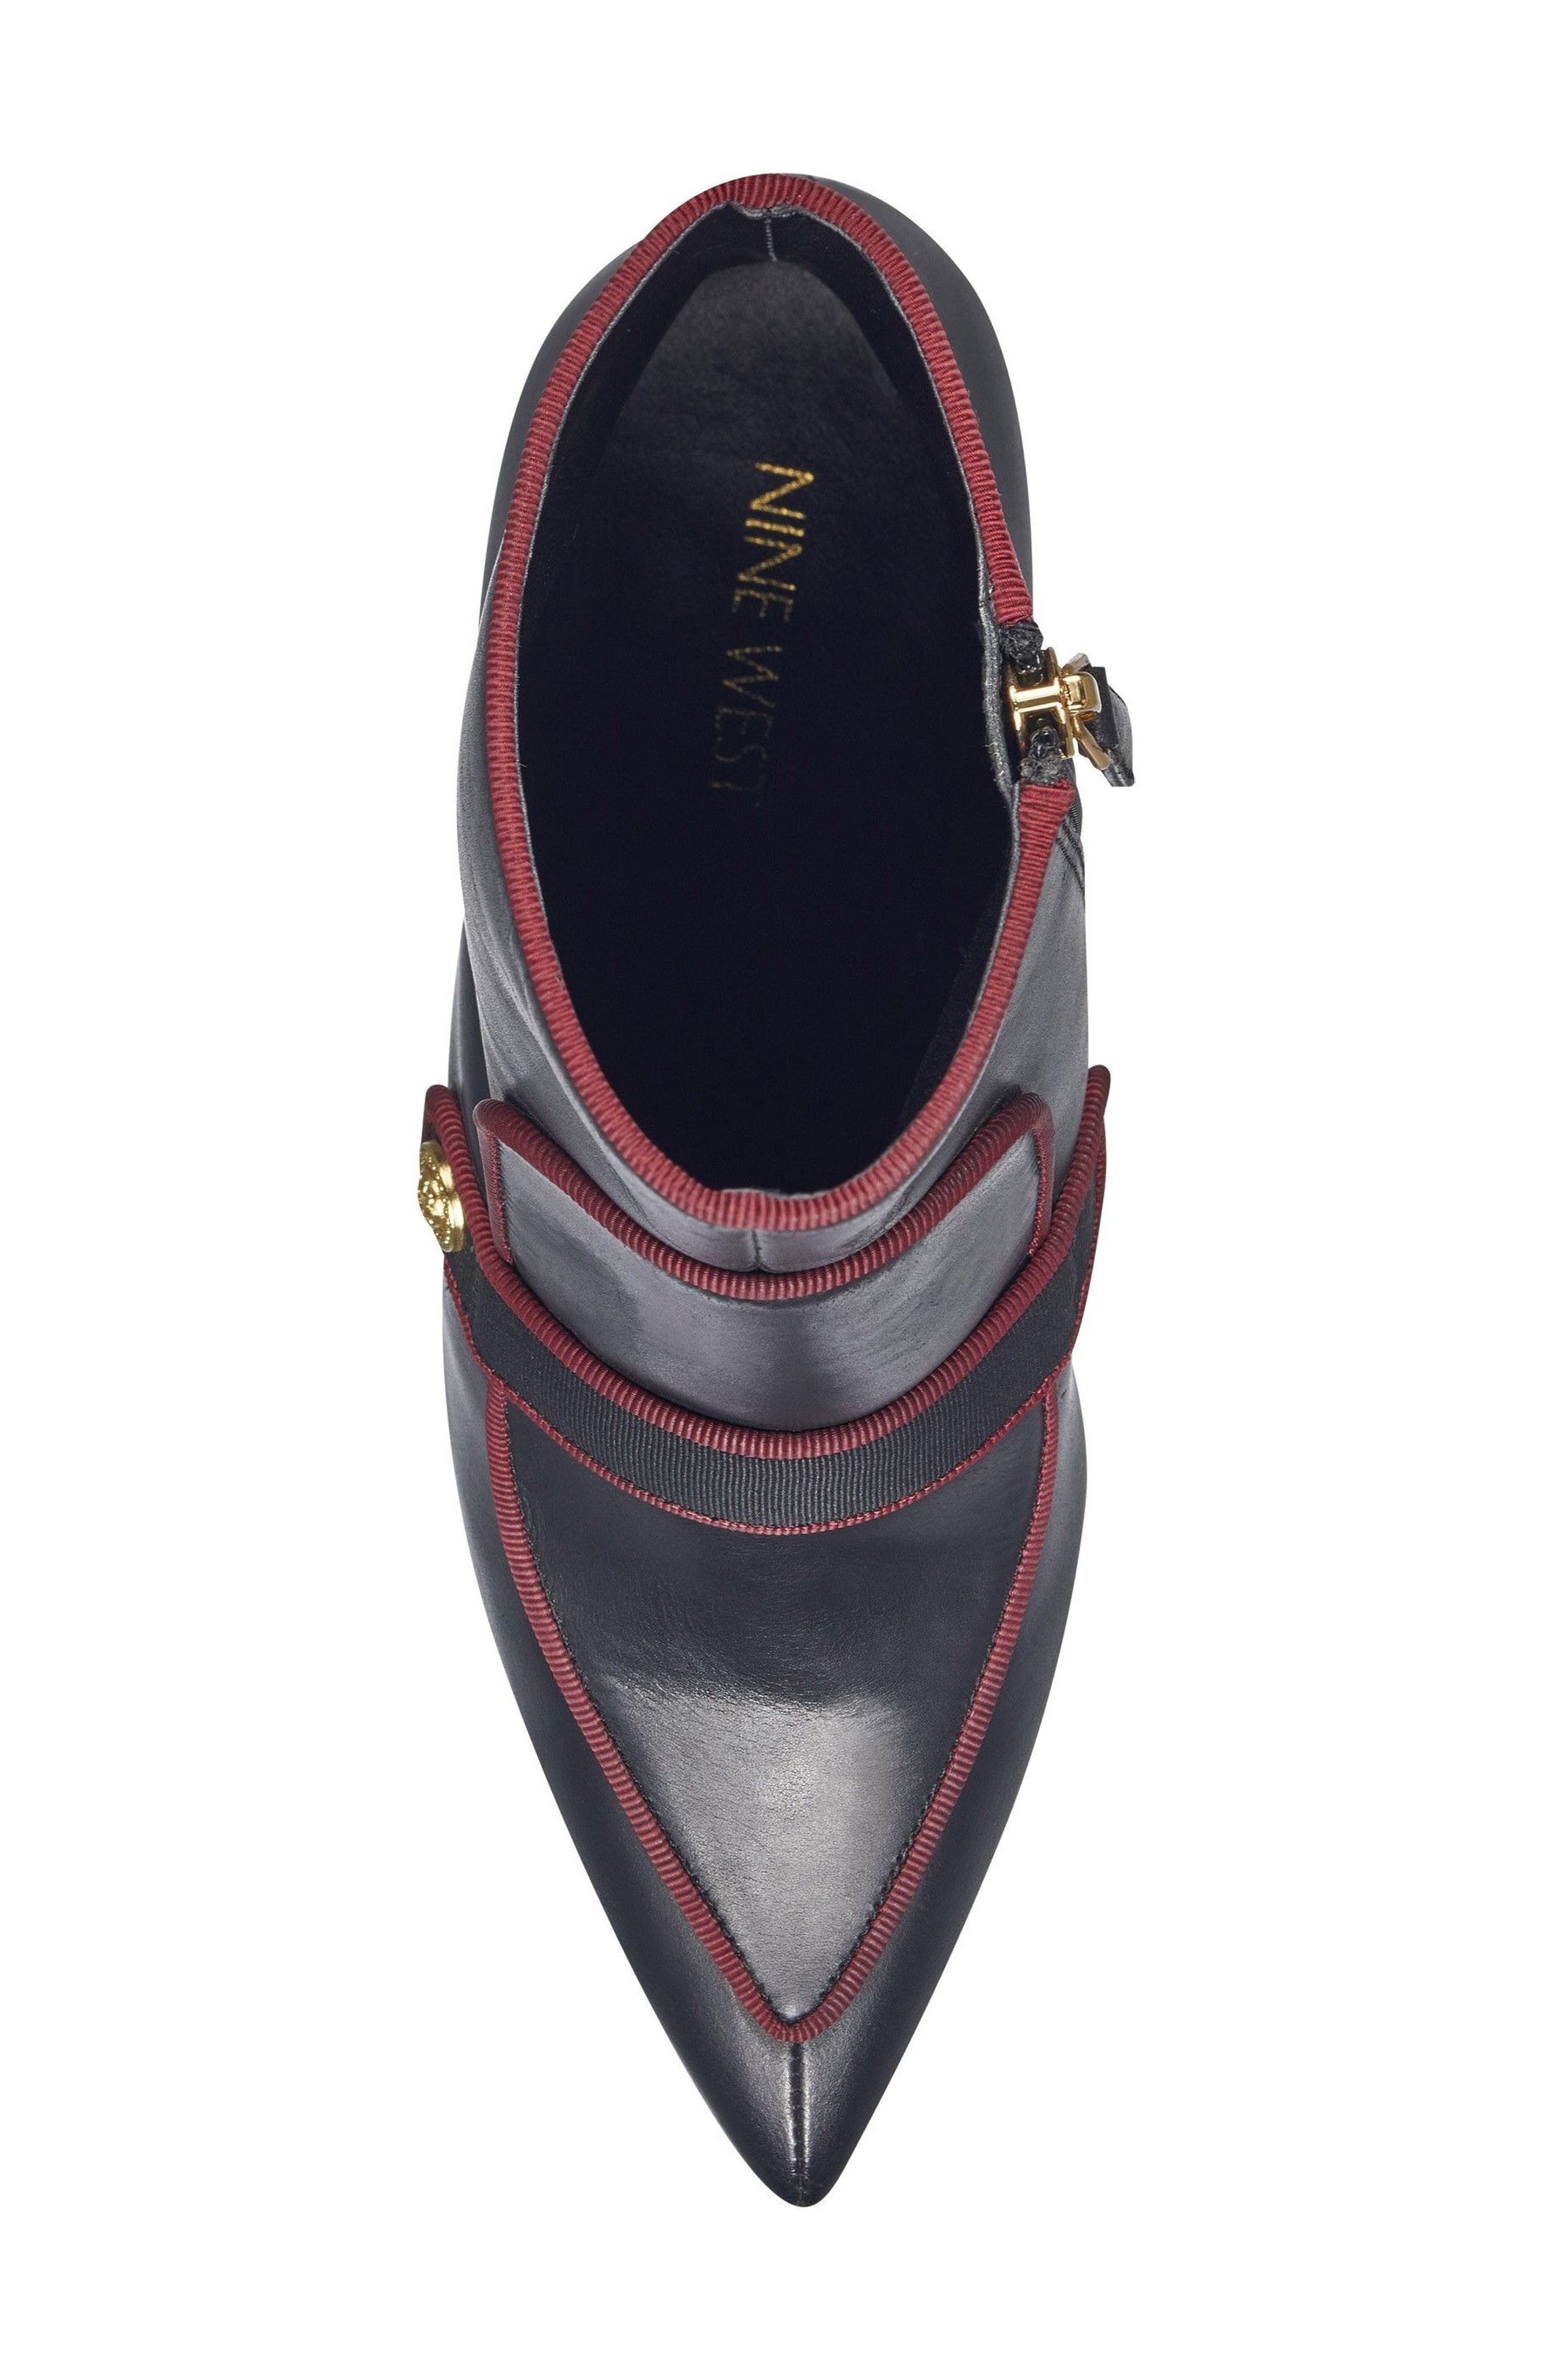 Westham Pointy Toe Bootie,                             Alternate thumbnail 5, color,                             Black/ Wine Leather